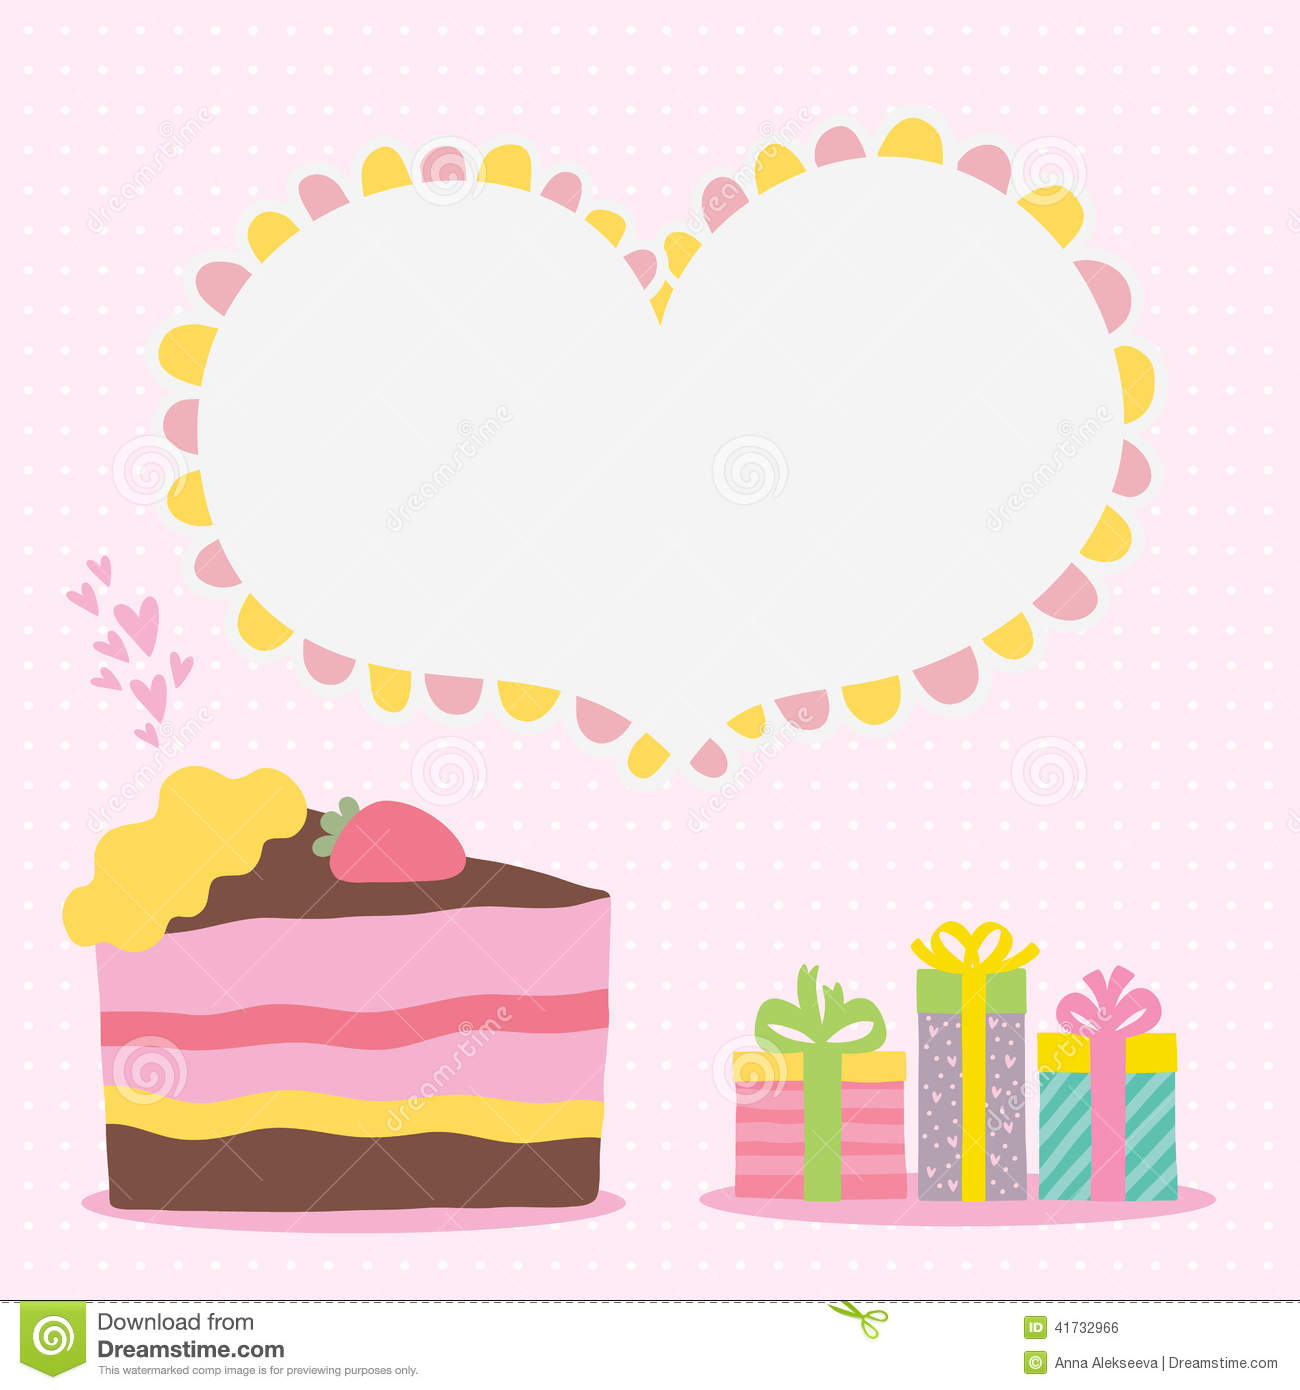 Happy Birthday Card Background With Cake Stock Vector   Illustration Of  Confetti, Birthday: 41732966